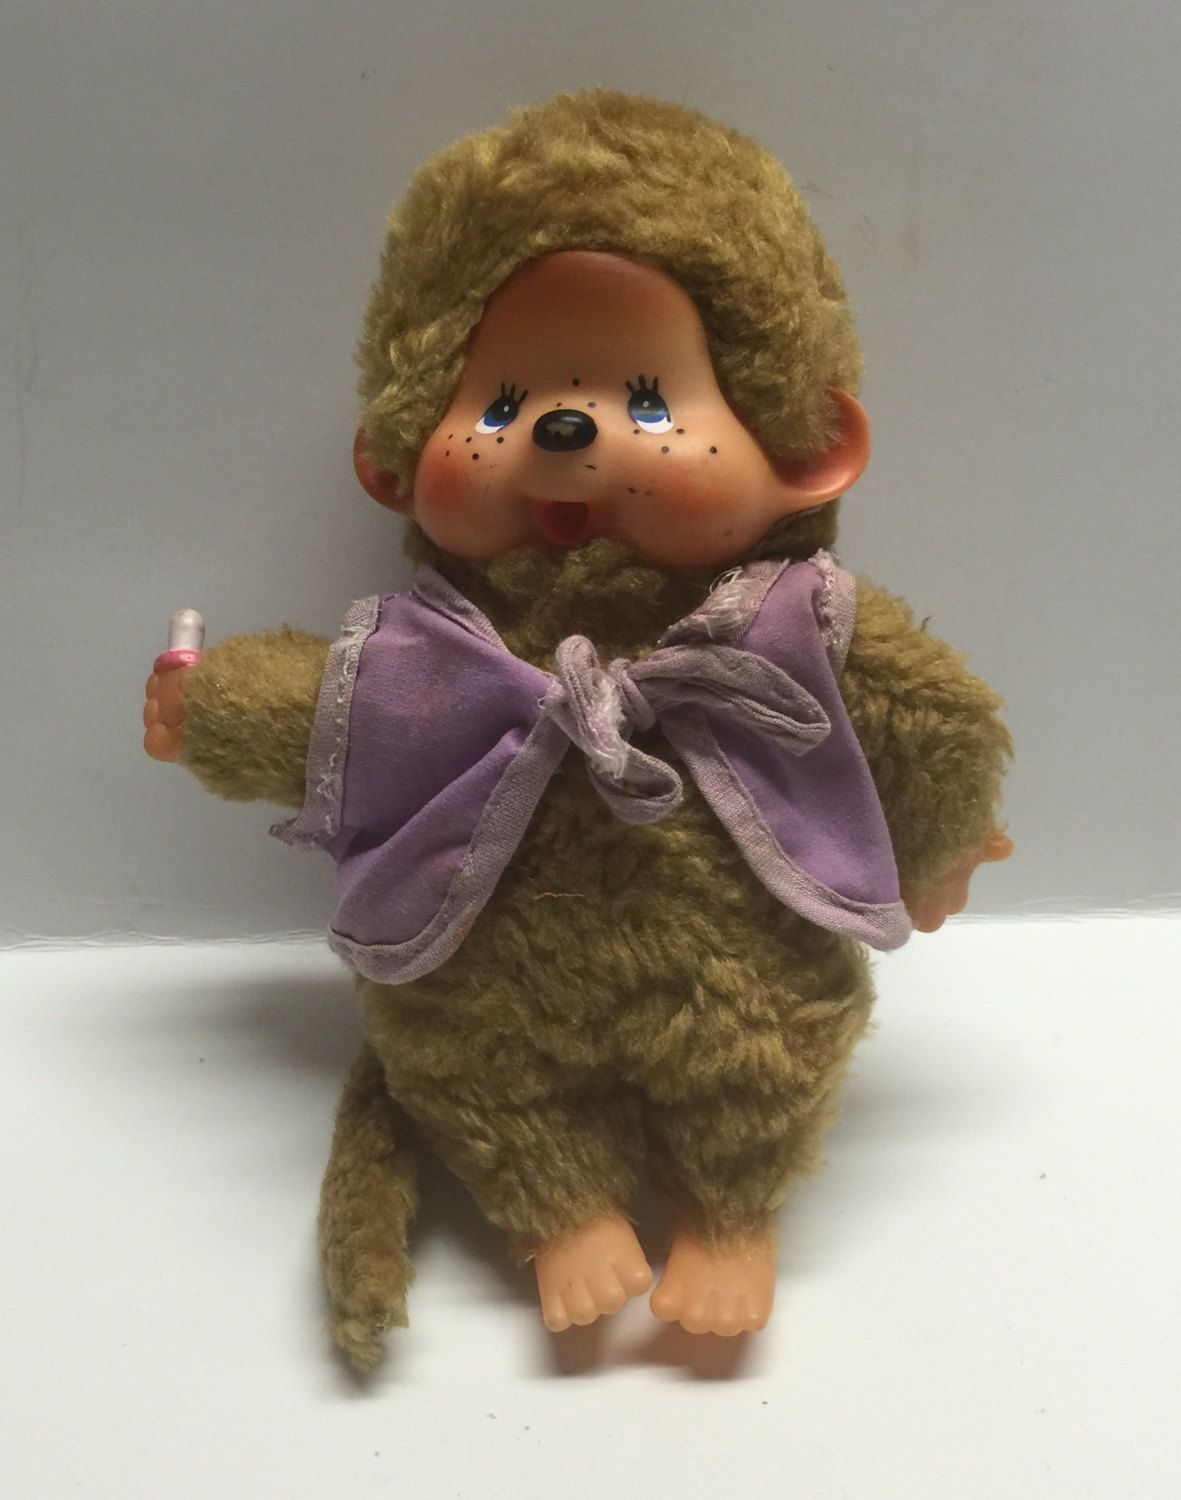 Monchhichi brown vintage Collectable doll purple vest bottle bear like stuffed animal by Bayleesncream on Etsy